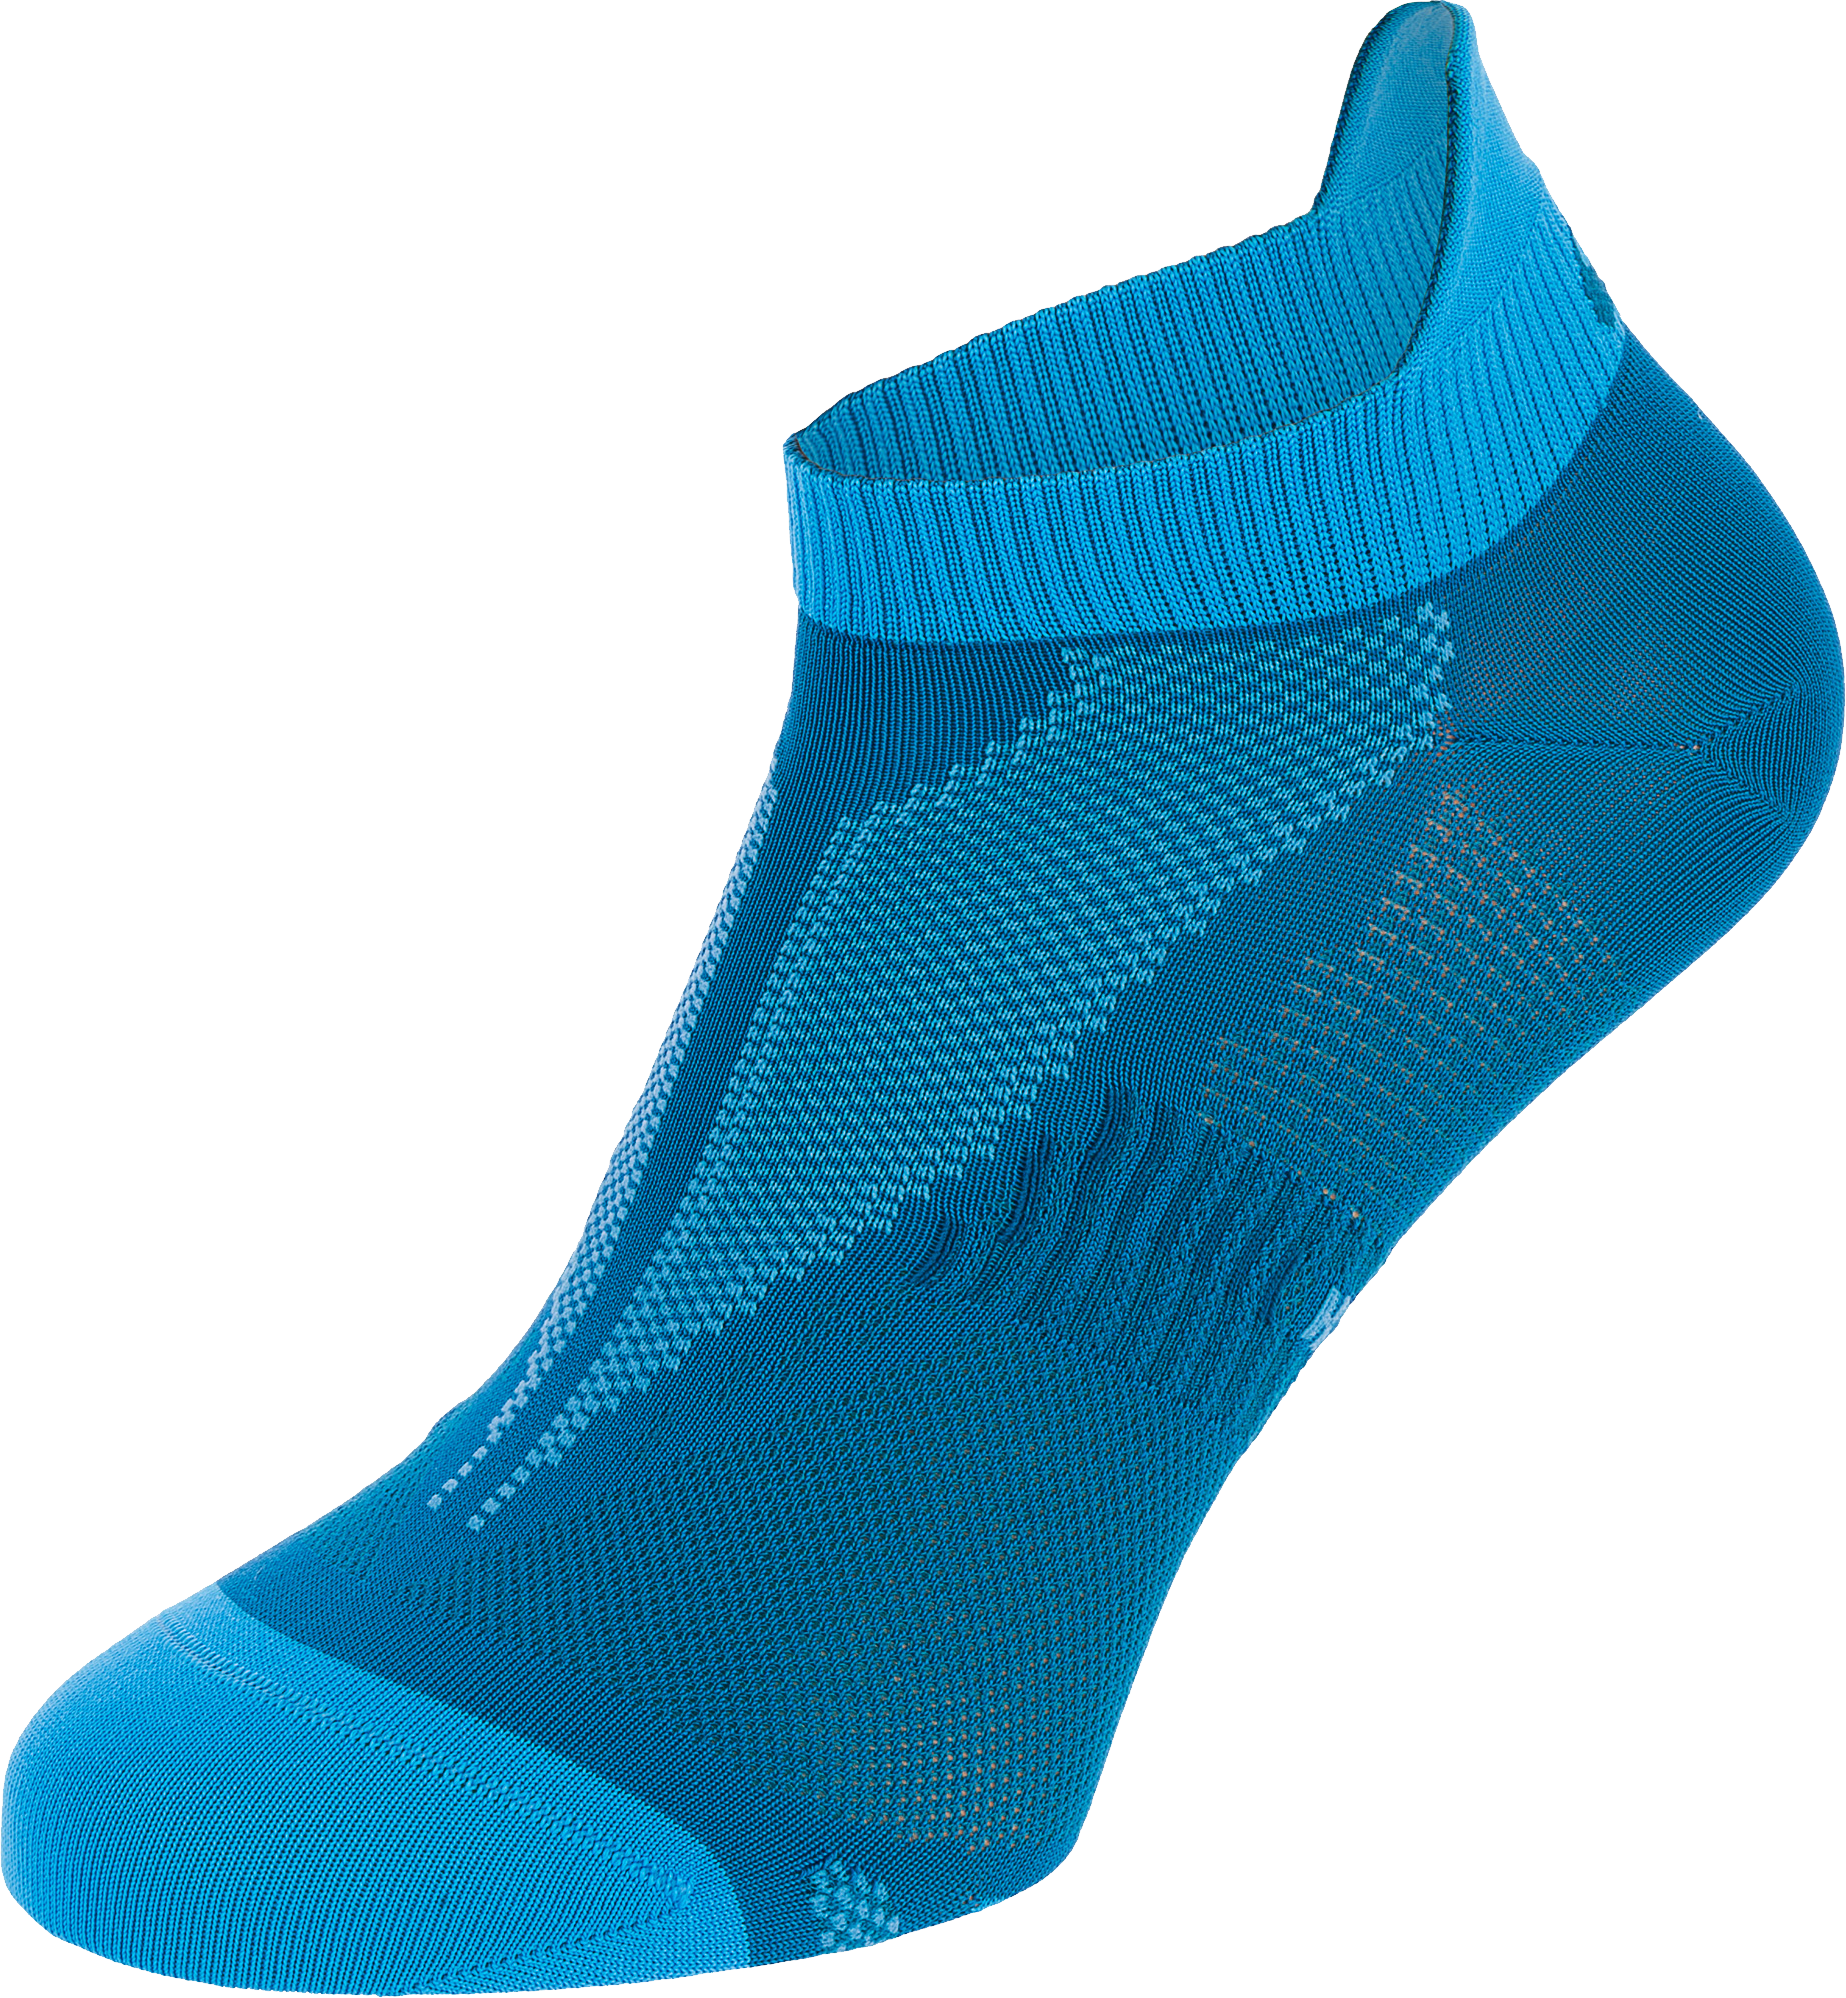 Free blue socks cliparts. Sock clipart knitted sock banner royalty free stock